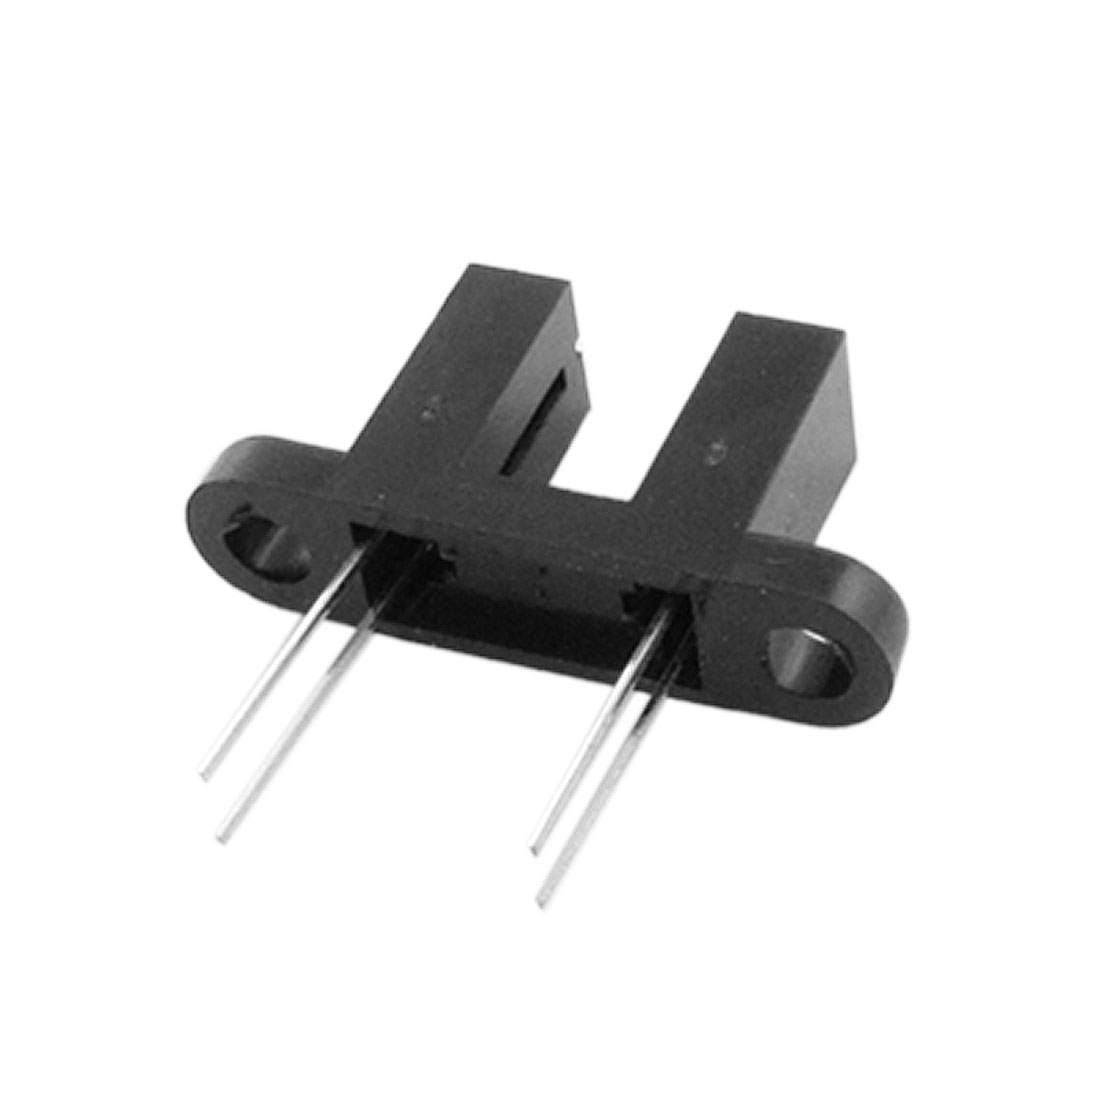 "10 Pcs 15/64"" Gap 4 Pins Optical Slot Switch w Bracket"